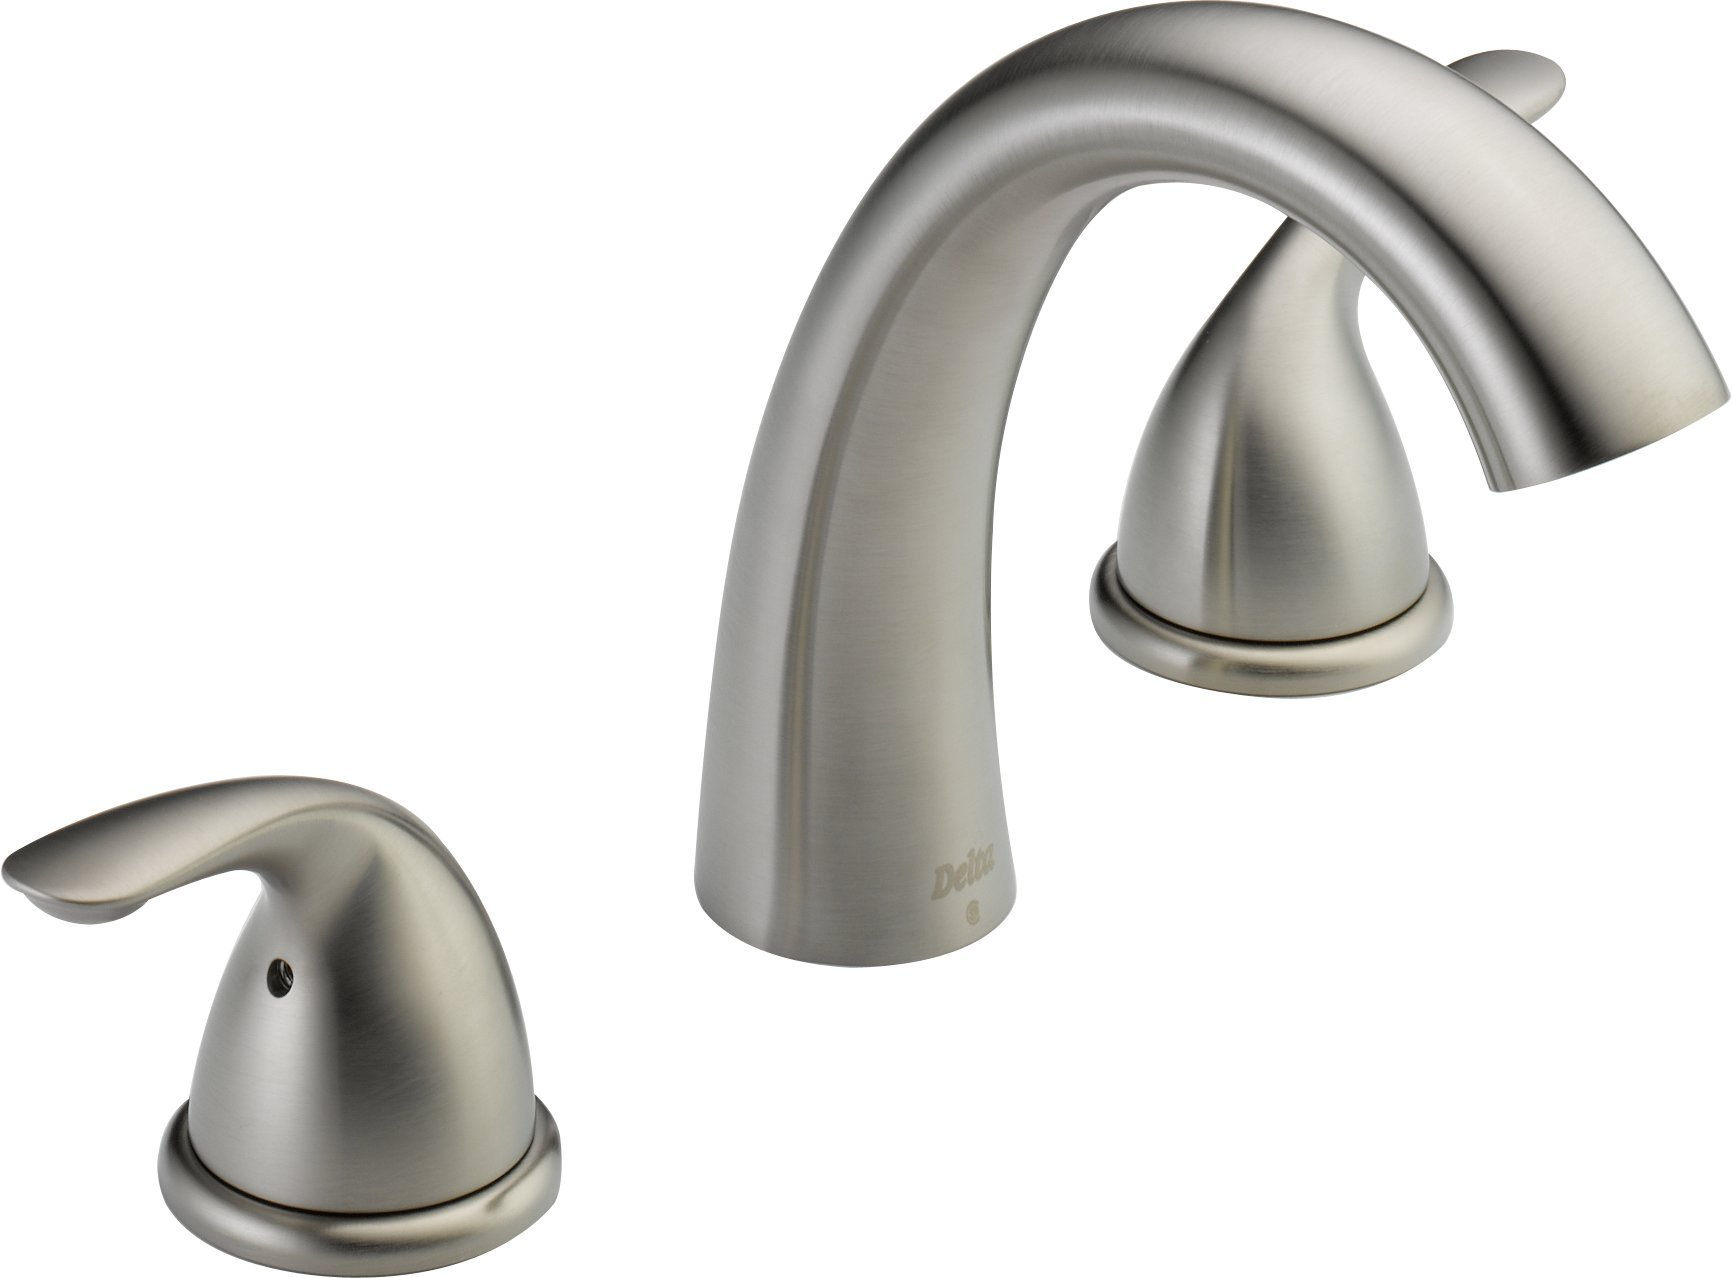 Delta T5722-SS Classic Roman Tub Trim, Stainless (Valve not included) by DELTA FAUCET